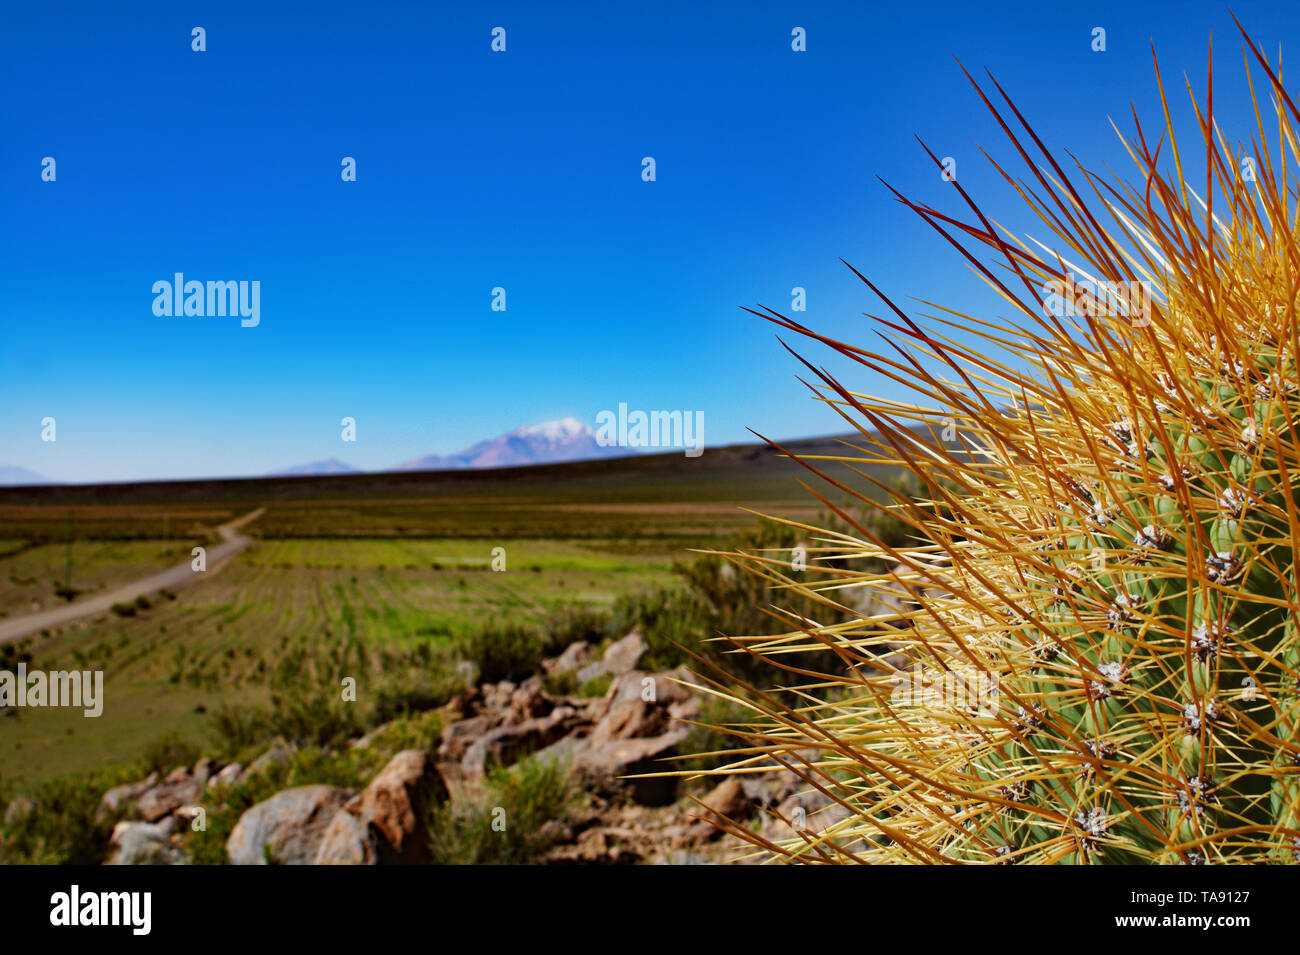 Cactus in the Bolivian Altiplanos with blurred background and volcano - Stock Image